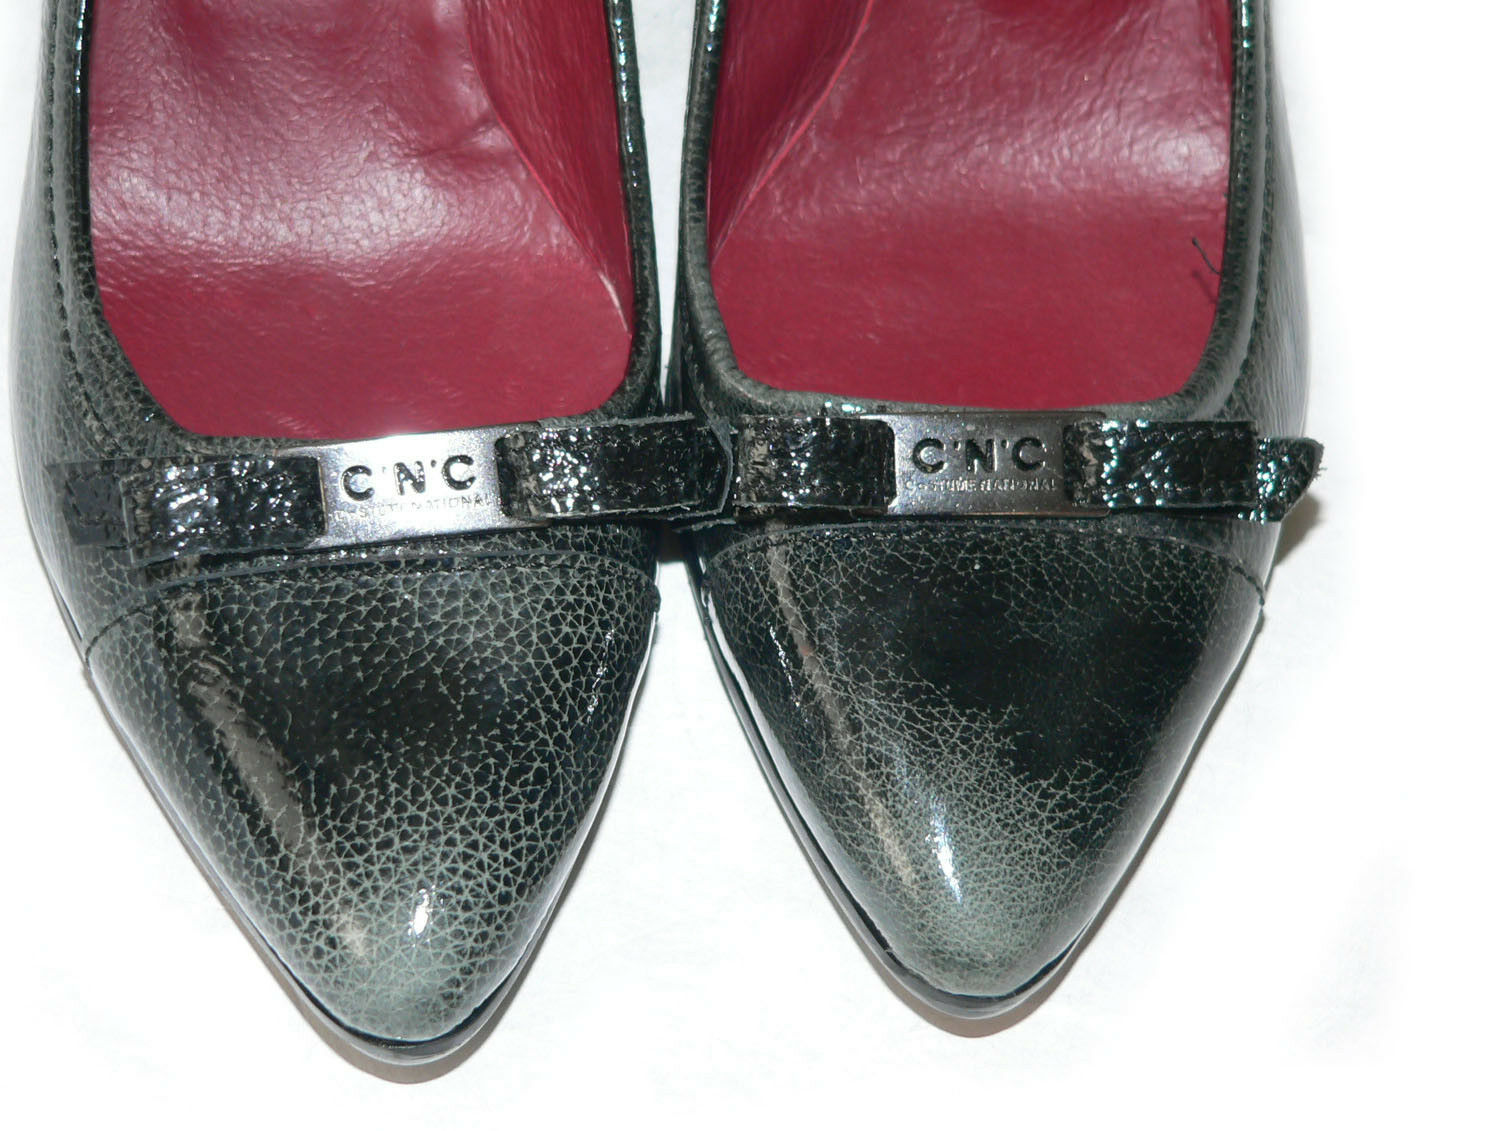 NEW COSTUME NATIONAL patent leather pumps heels shoes  754 37 charcoal designer